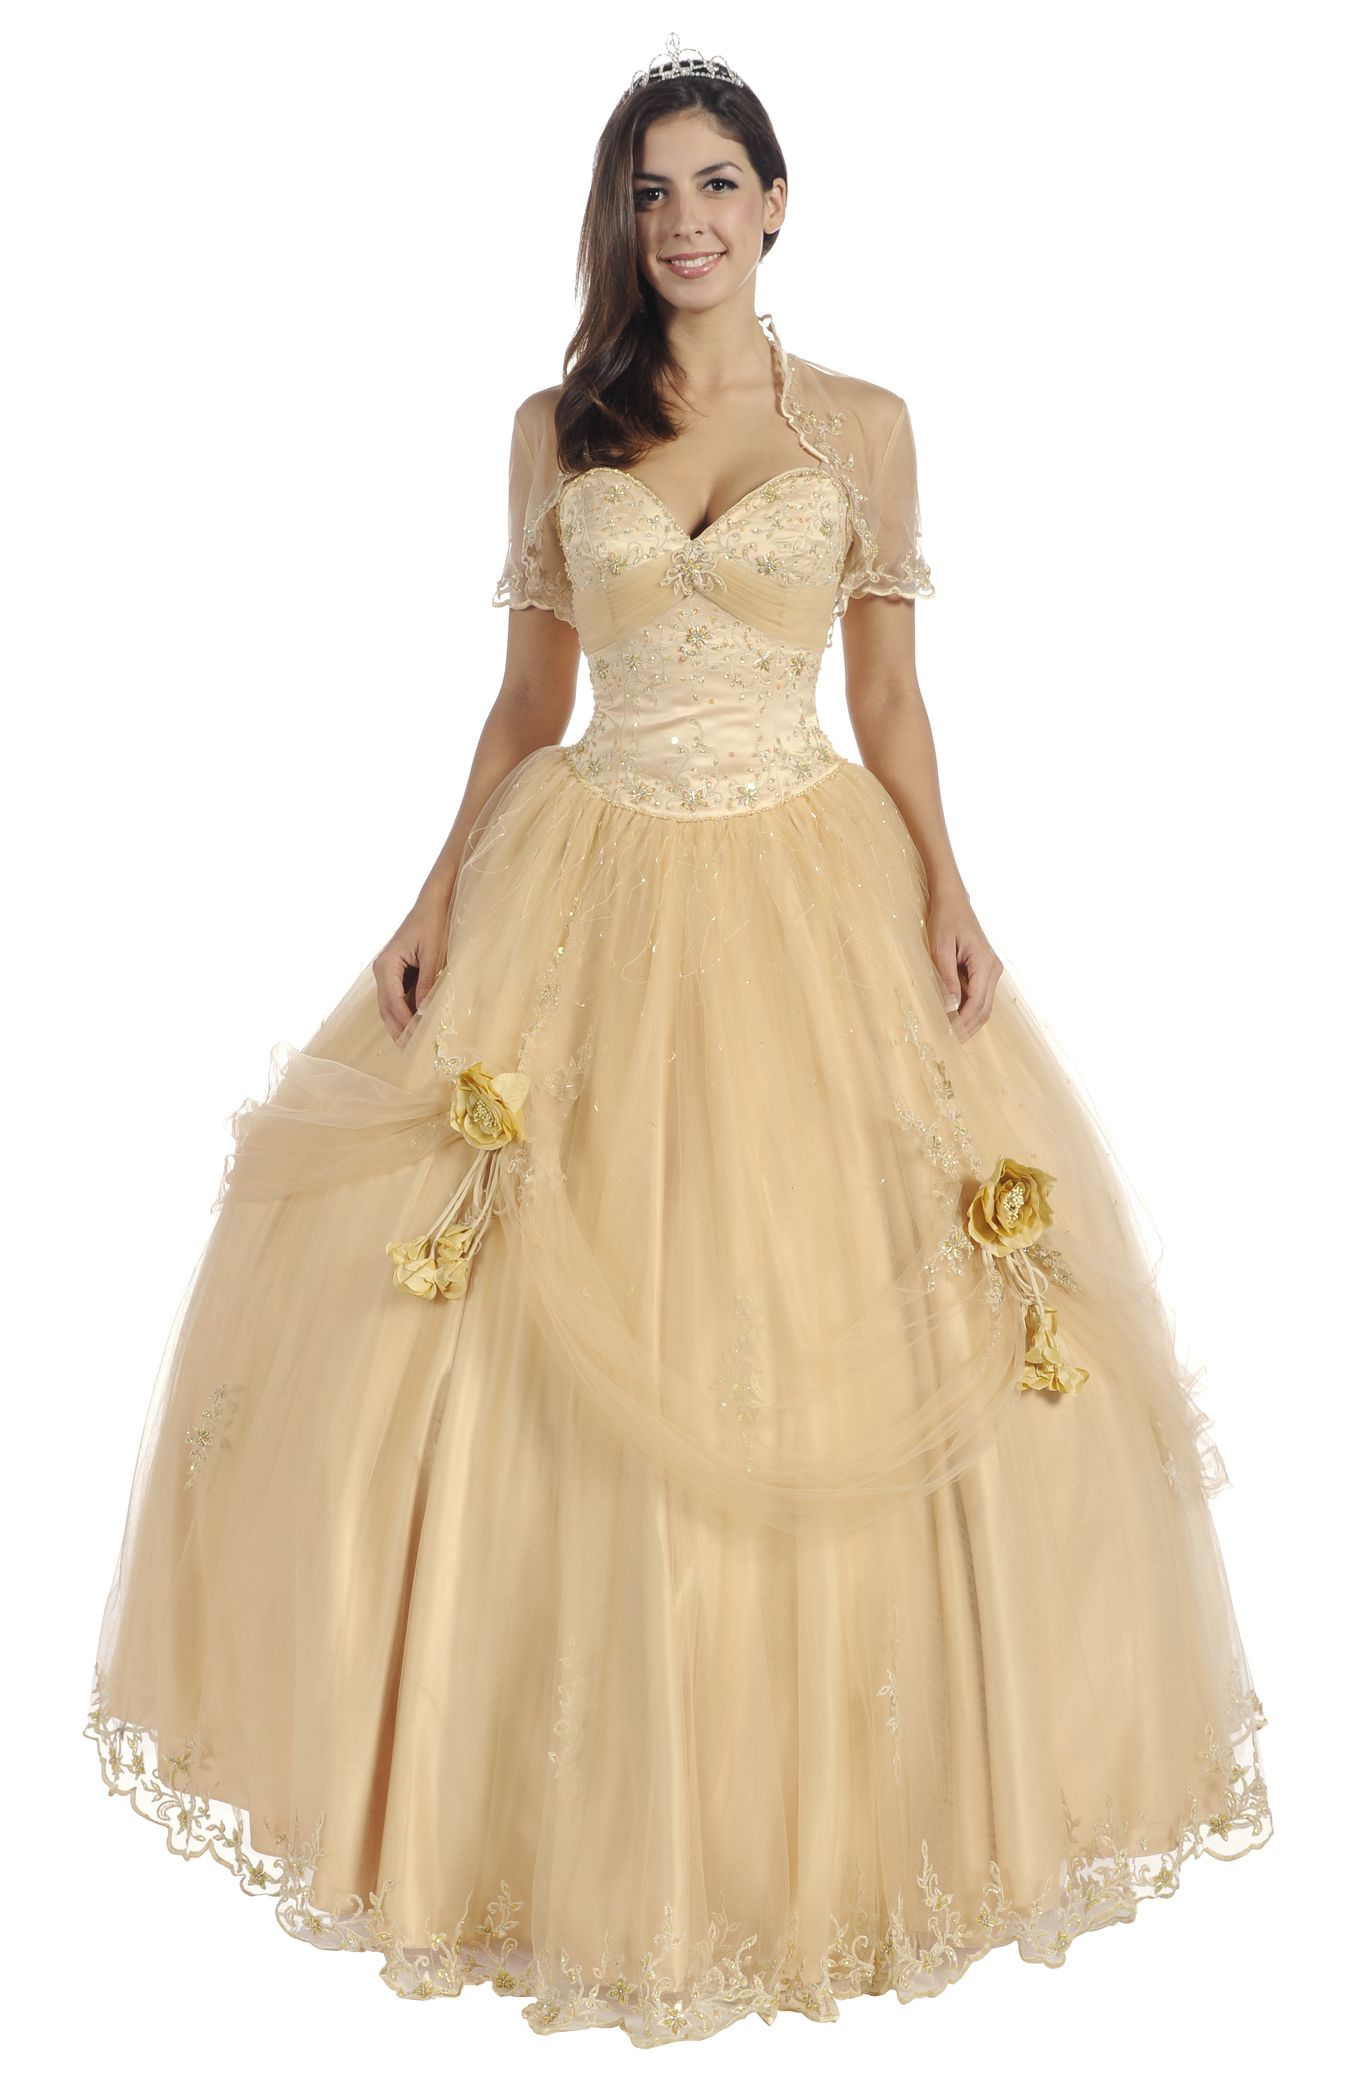 gold dresses gold quinceanera dress bolero strapless poofy princess gown satin 4 - Gold Color Dress